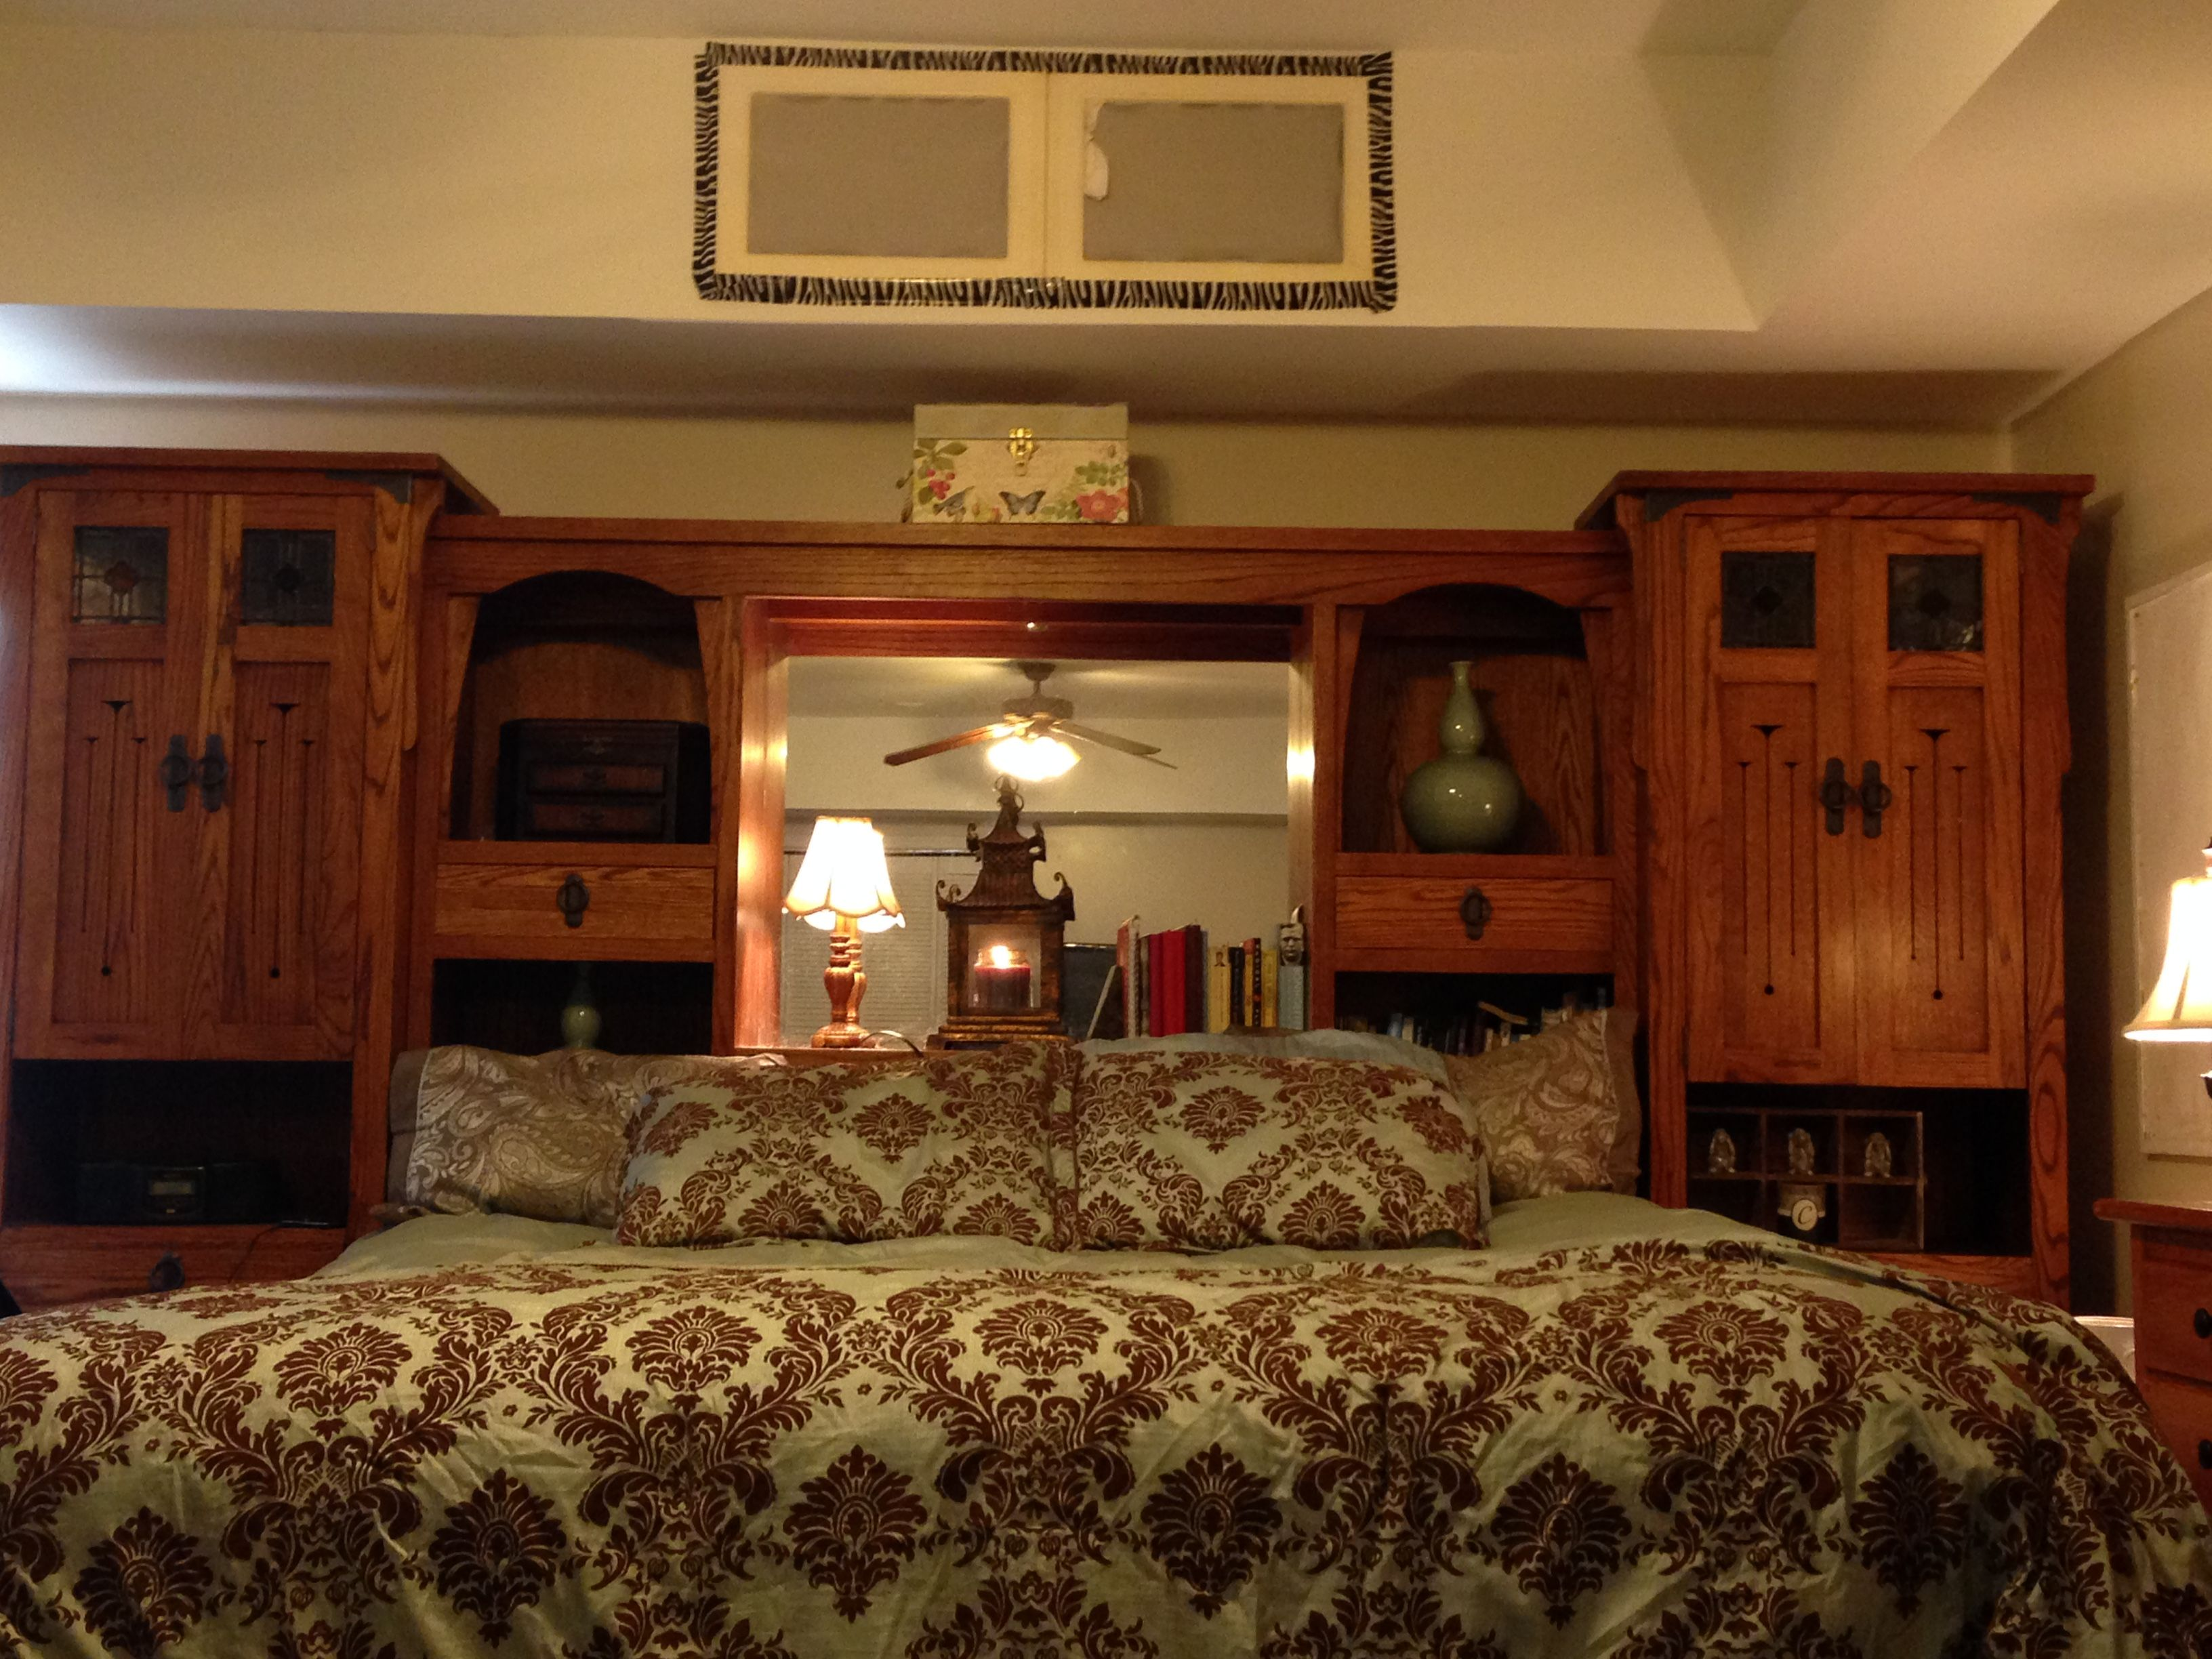 Our massive king headboard. We call it the castle. So much